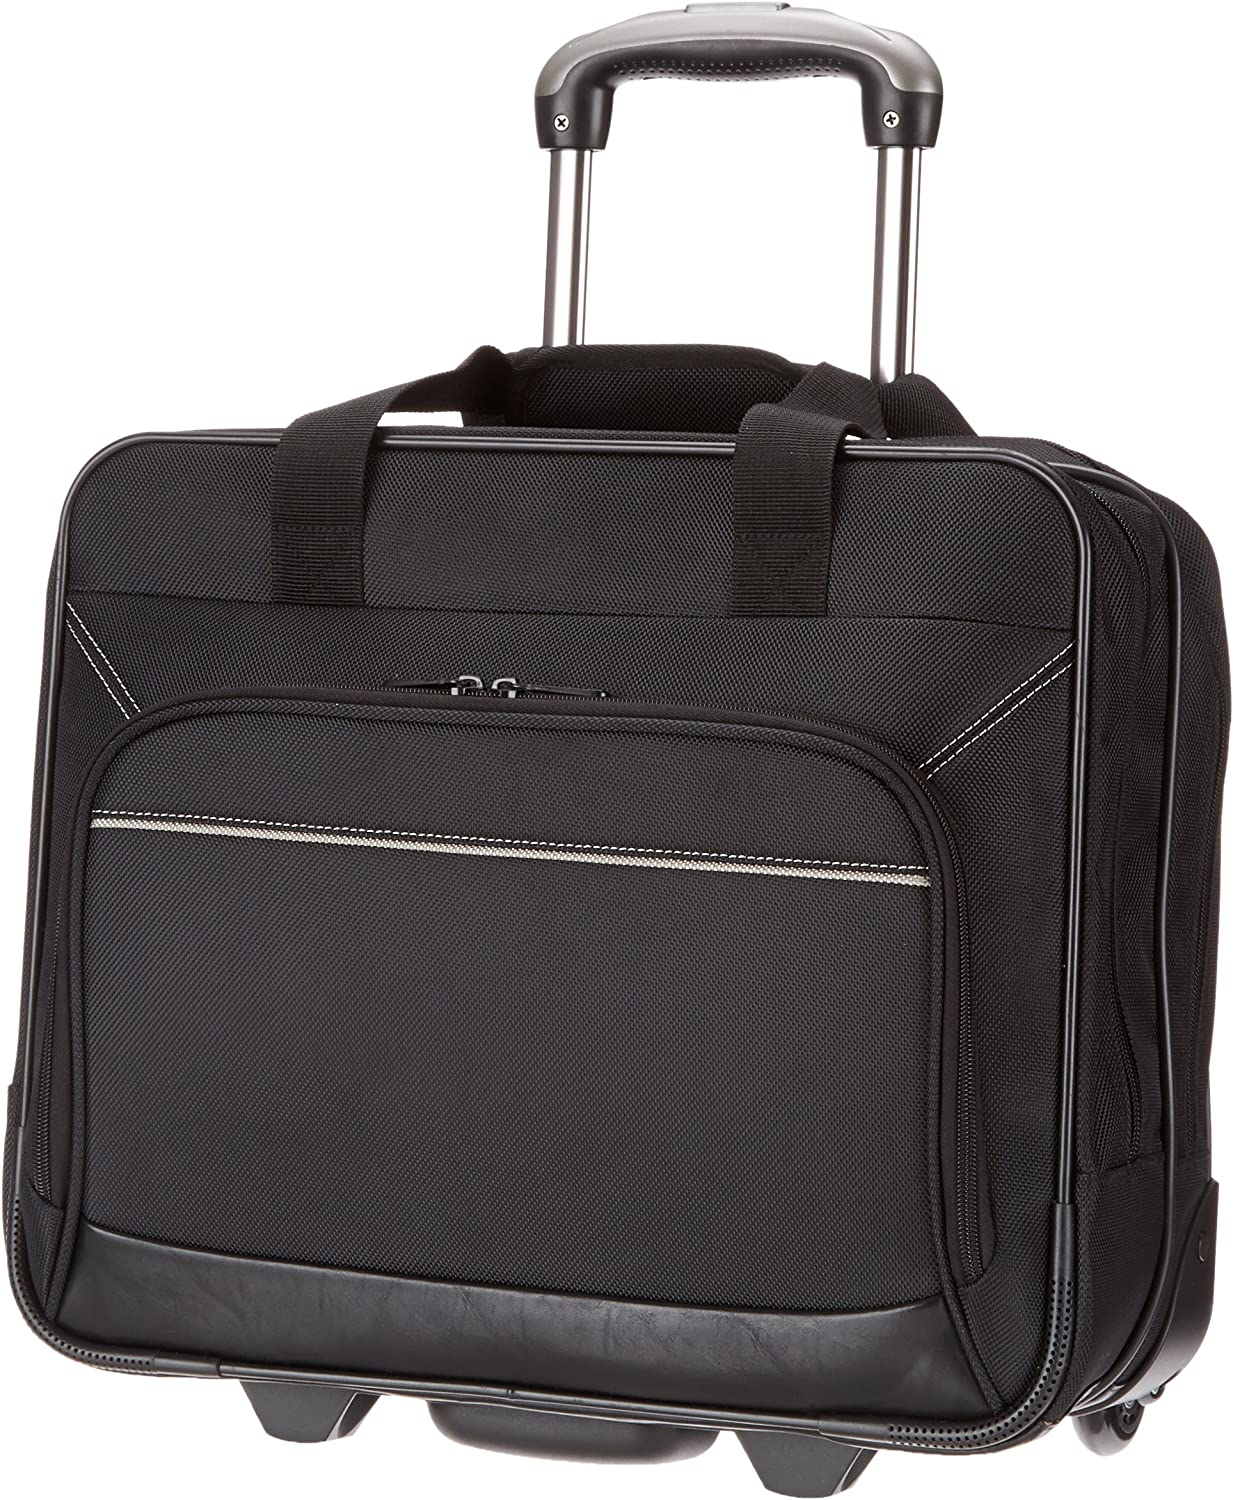 AmazonBasics Rolling Travel Bag Laptop Computer Case, 2-Pack